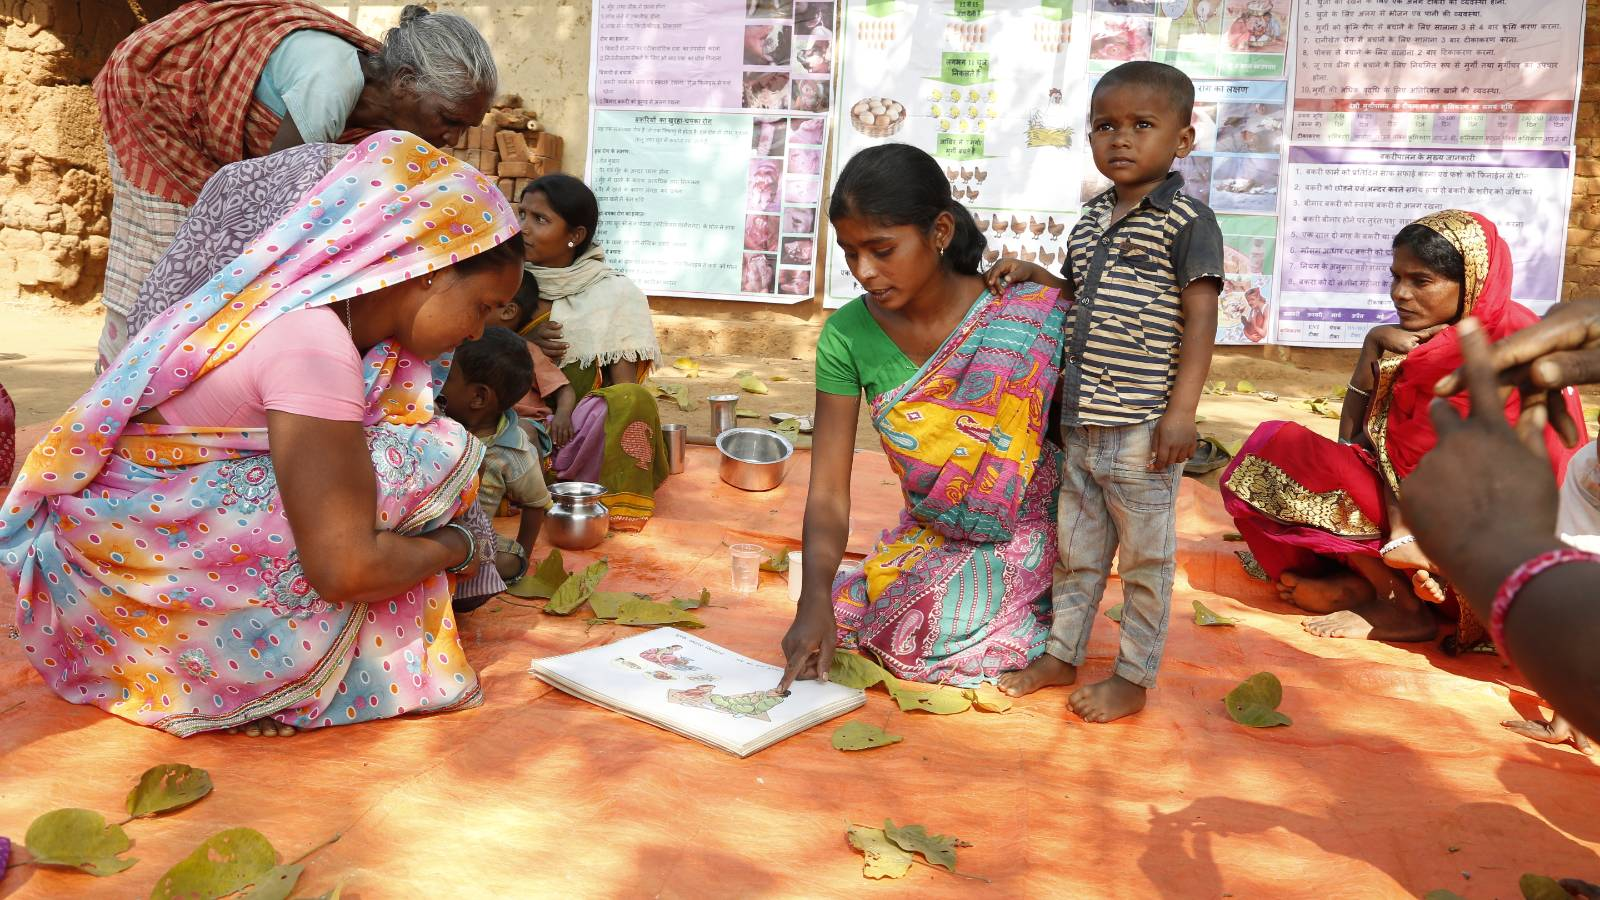 Women SHGs to tackle health issues by growing nutritive crops and consuming holistically nourishing food, while ensuring sanitation and hygiene